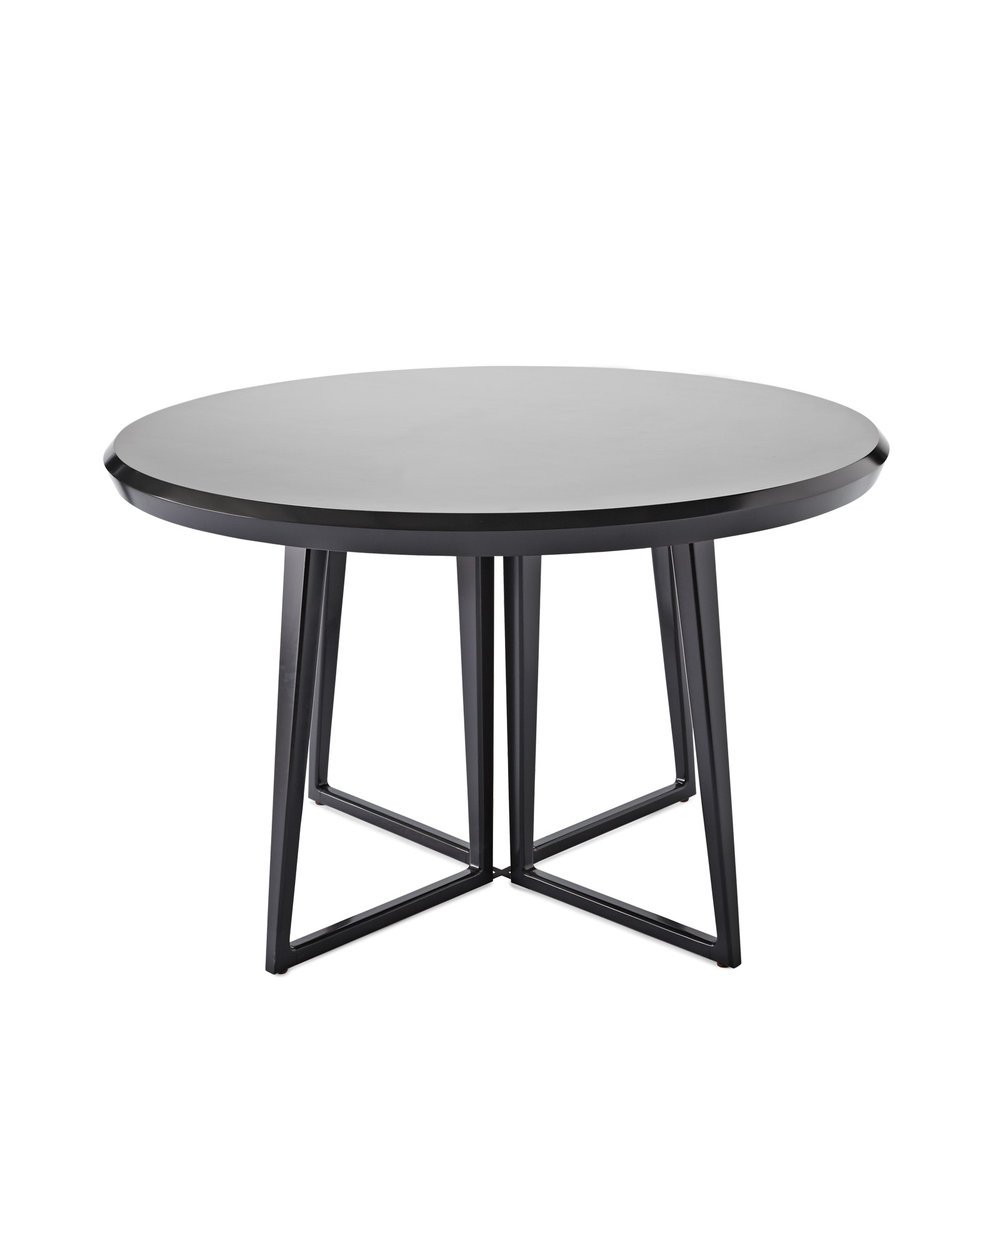 Furn_Dining_Table_Downing_Round_Pewter_MV_Crop_SH.jpg